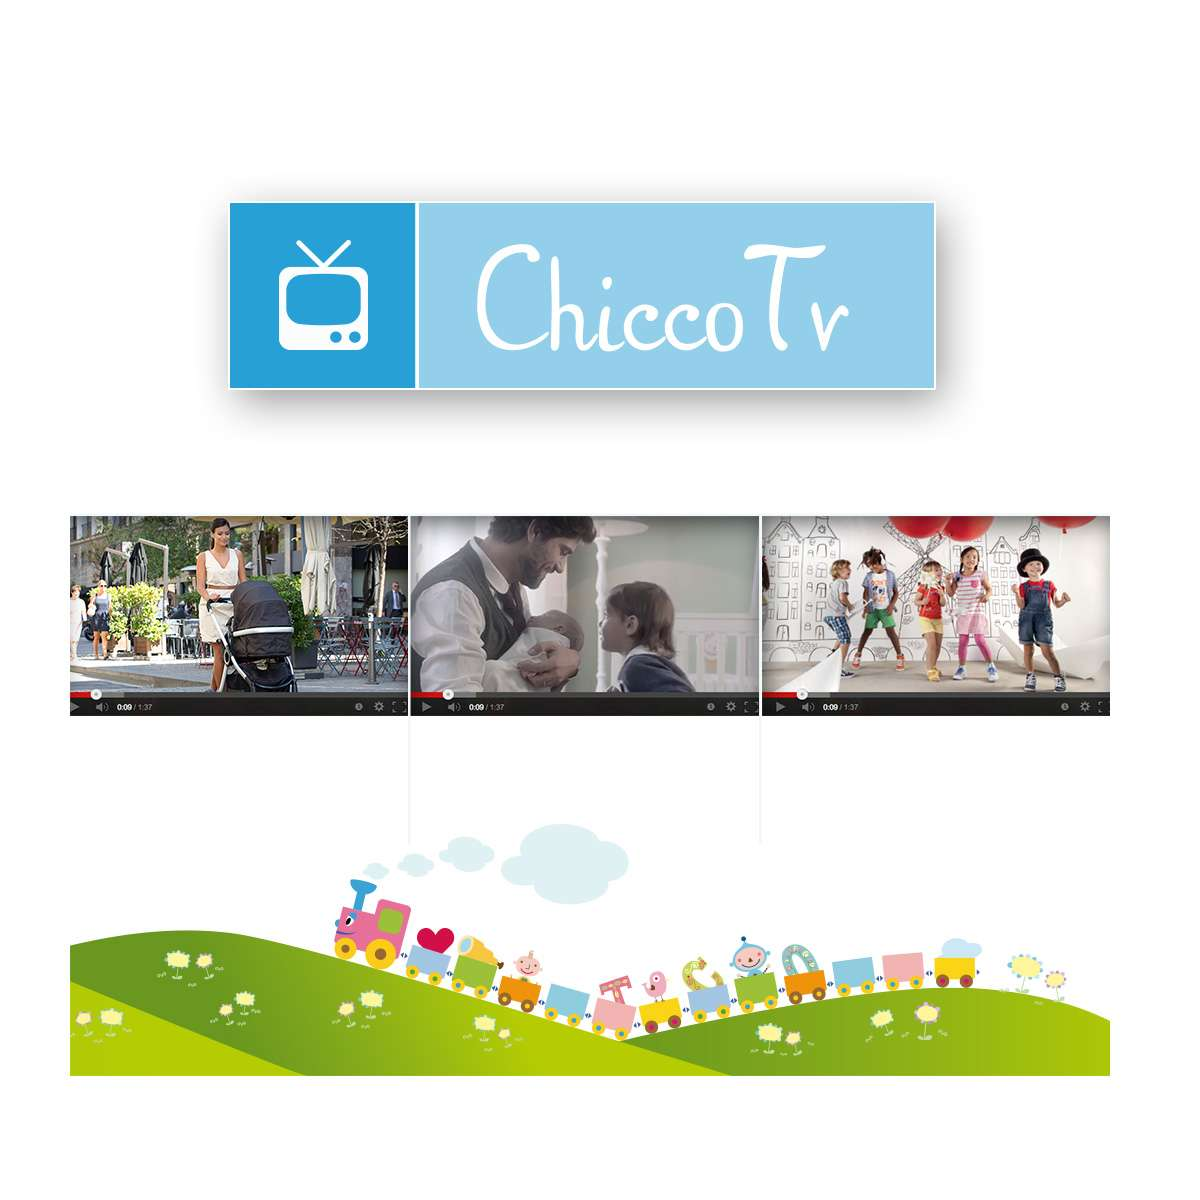 chicco-tv-1